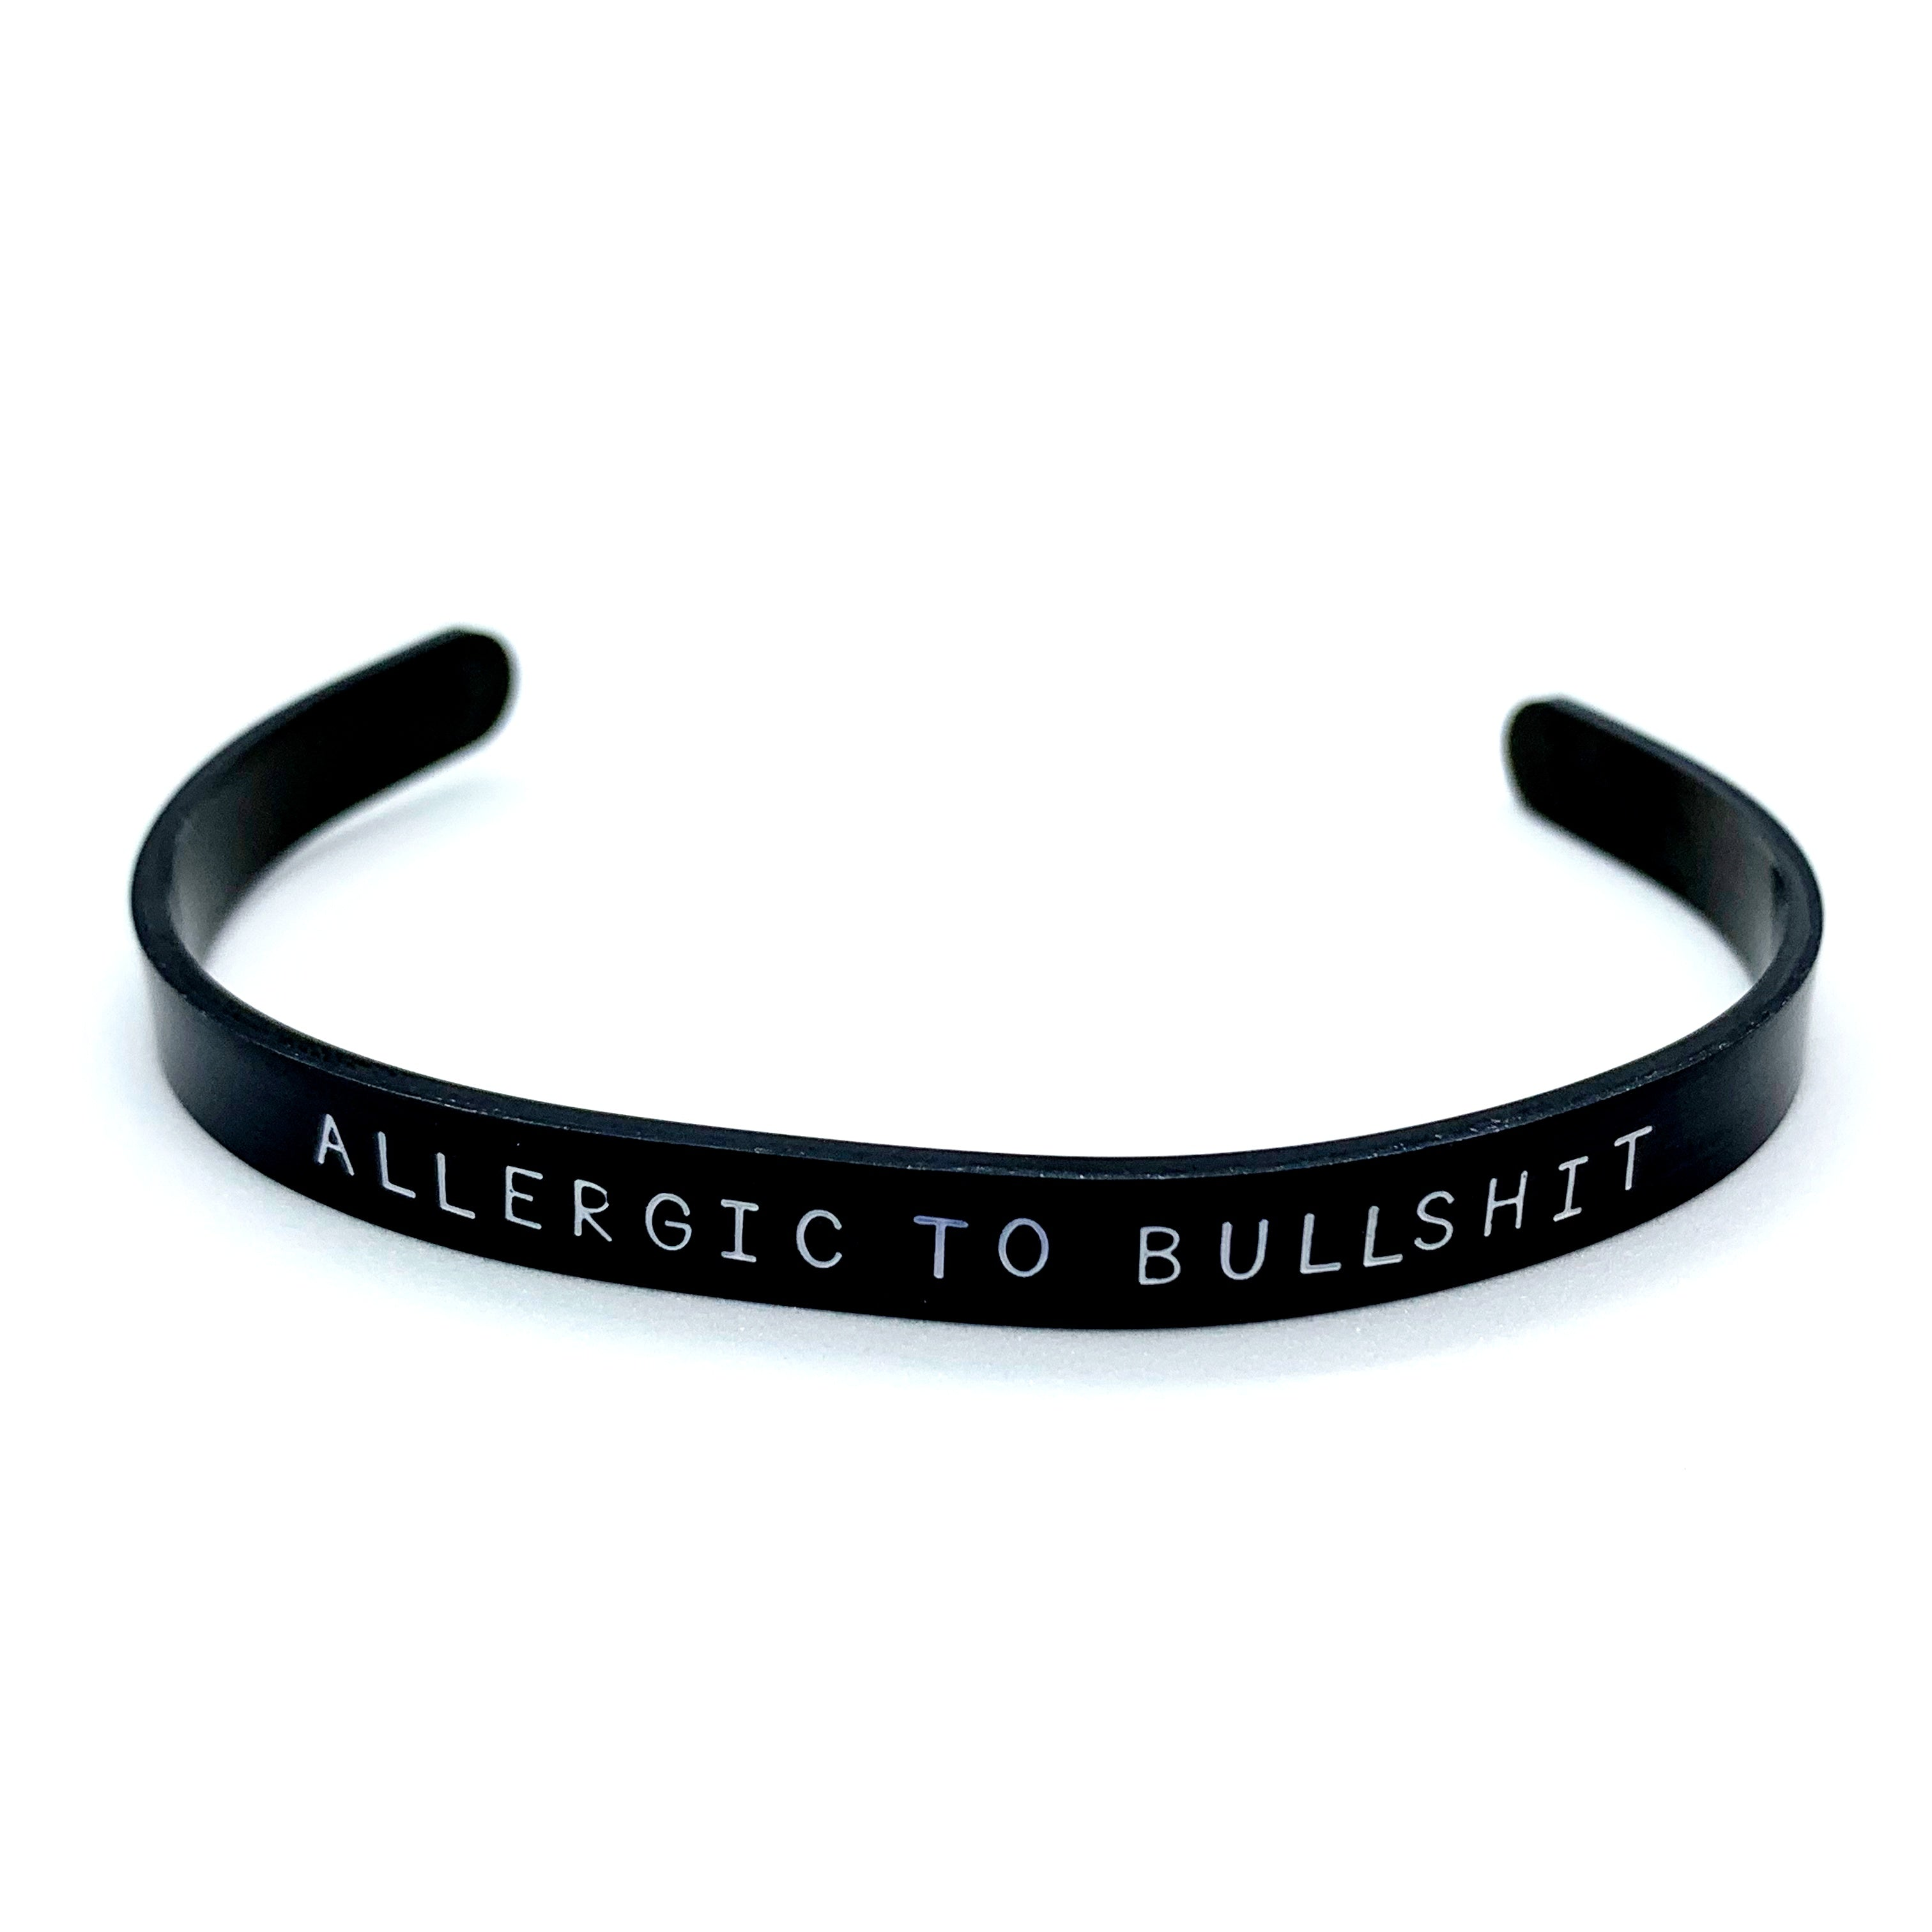 ¼ inch Stainless Steel Black Cuff - Allergic To Bullshit